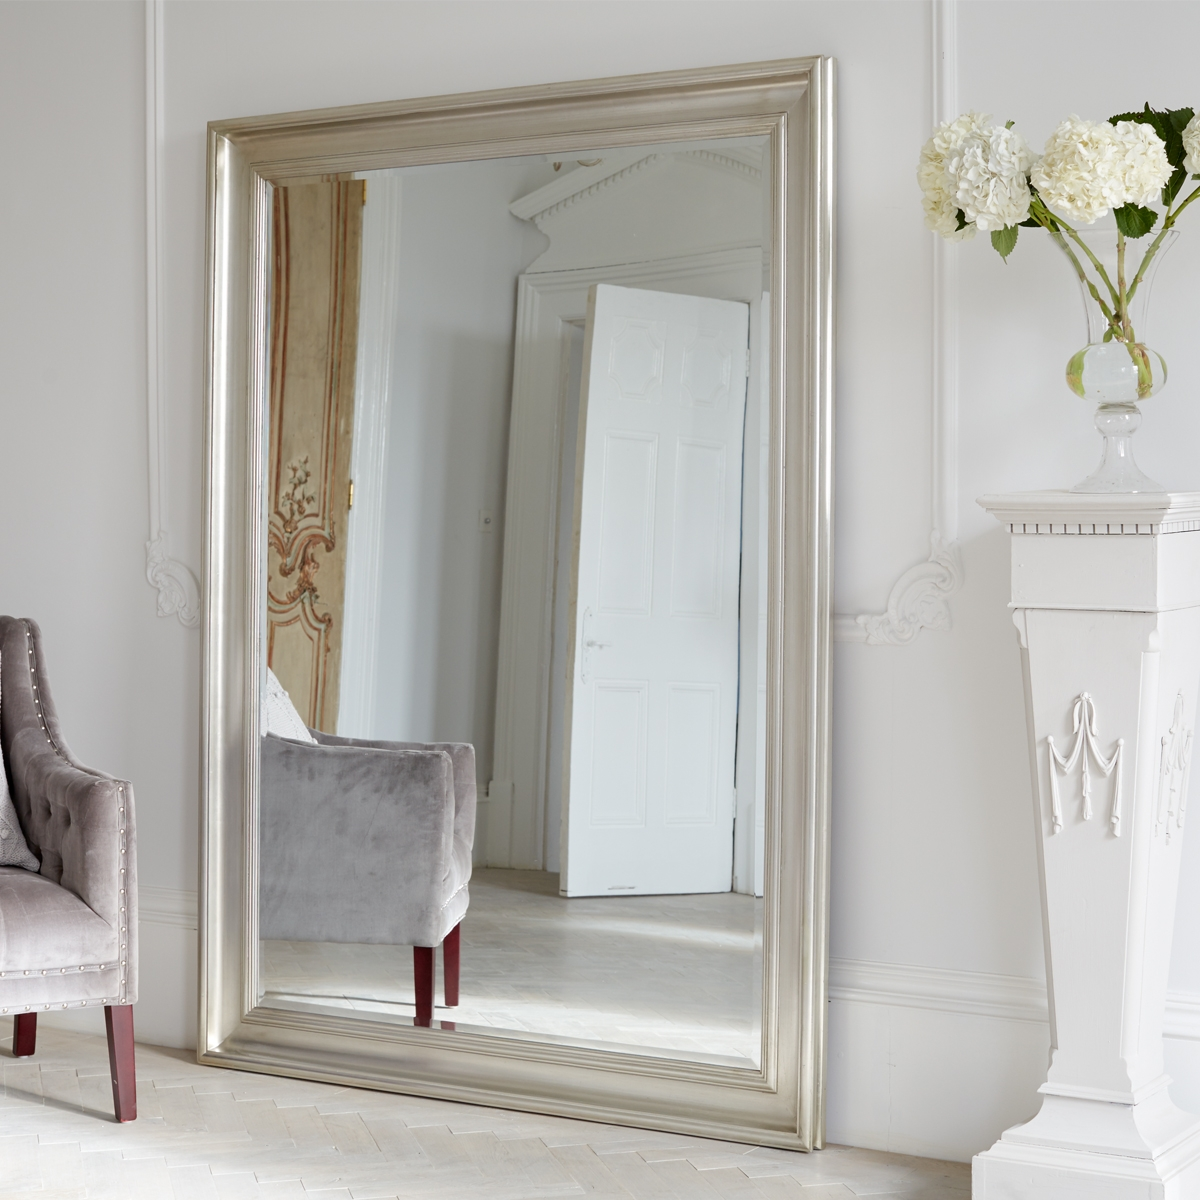 Flooring Oversized Floor Mirror I Want Large In The Formal Within Vintage Floor Mirrors Large (Image 7 of 15)